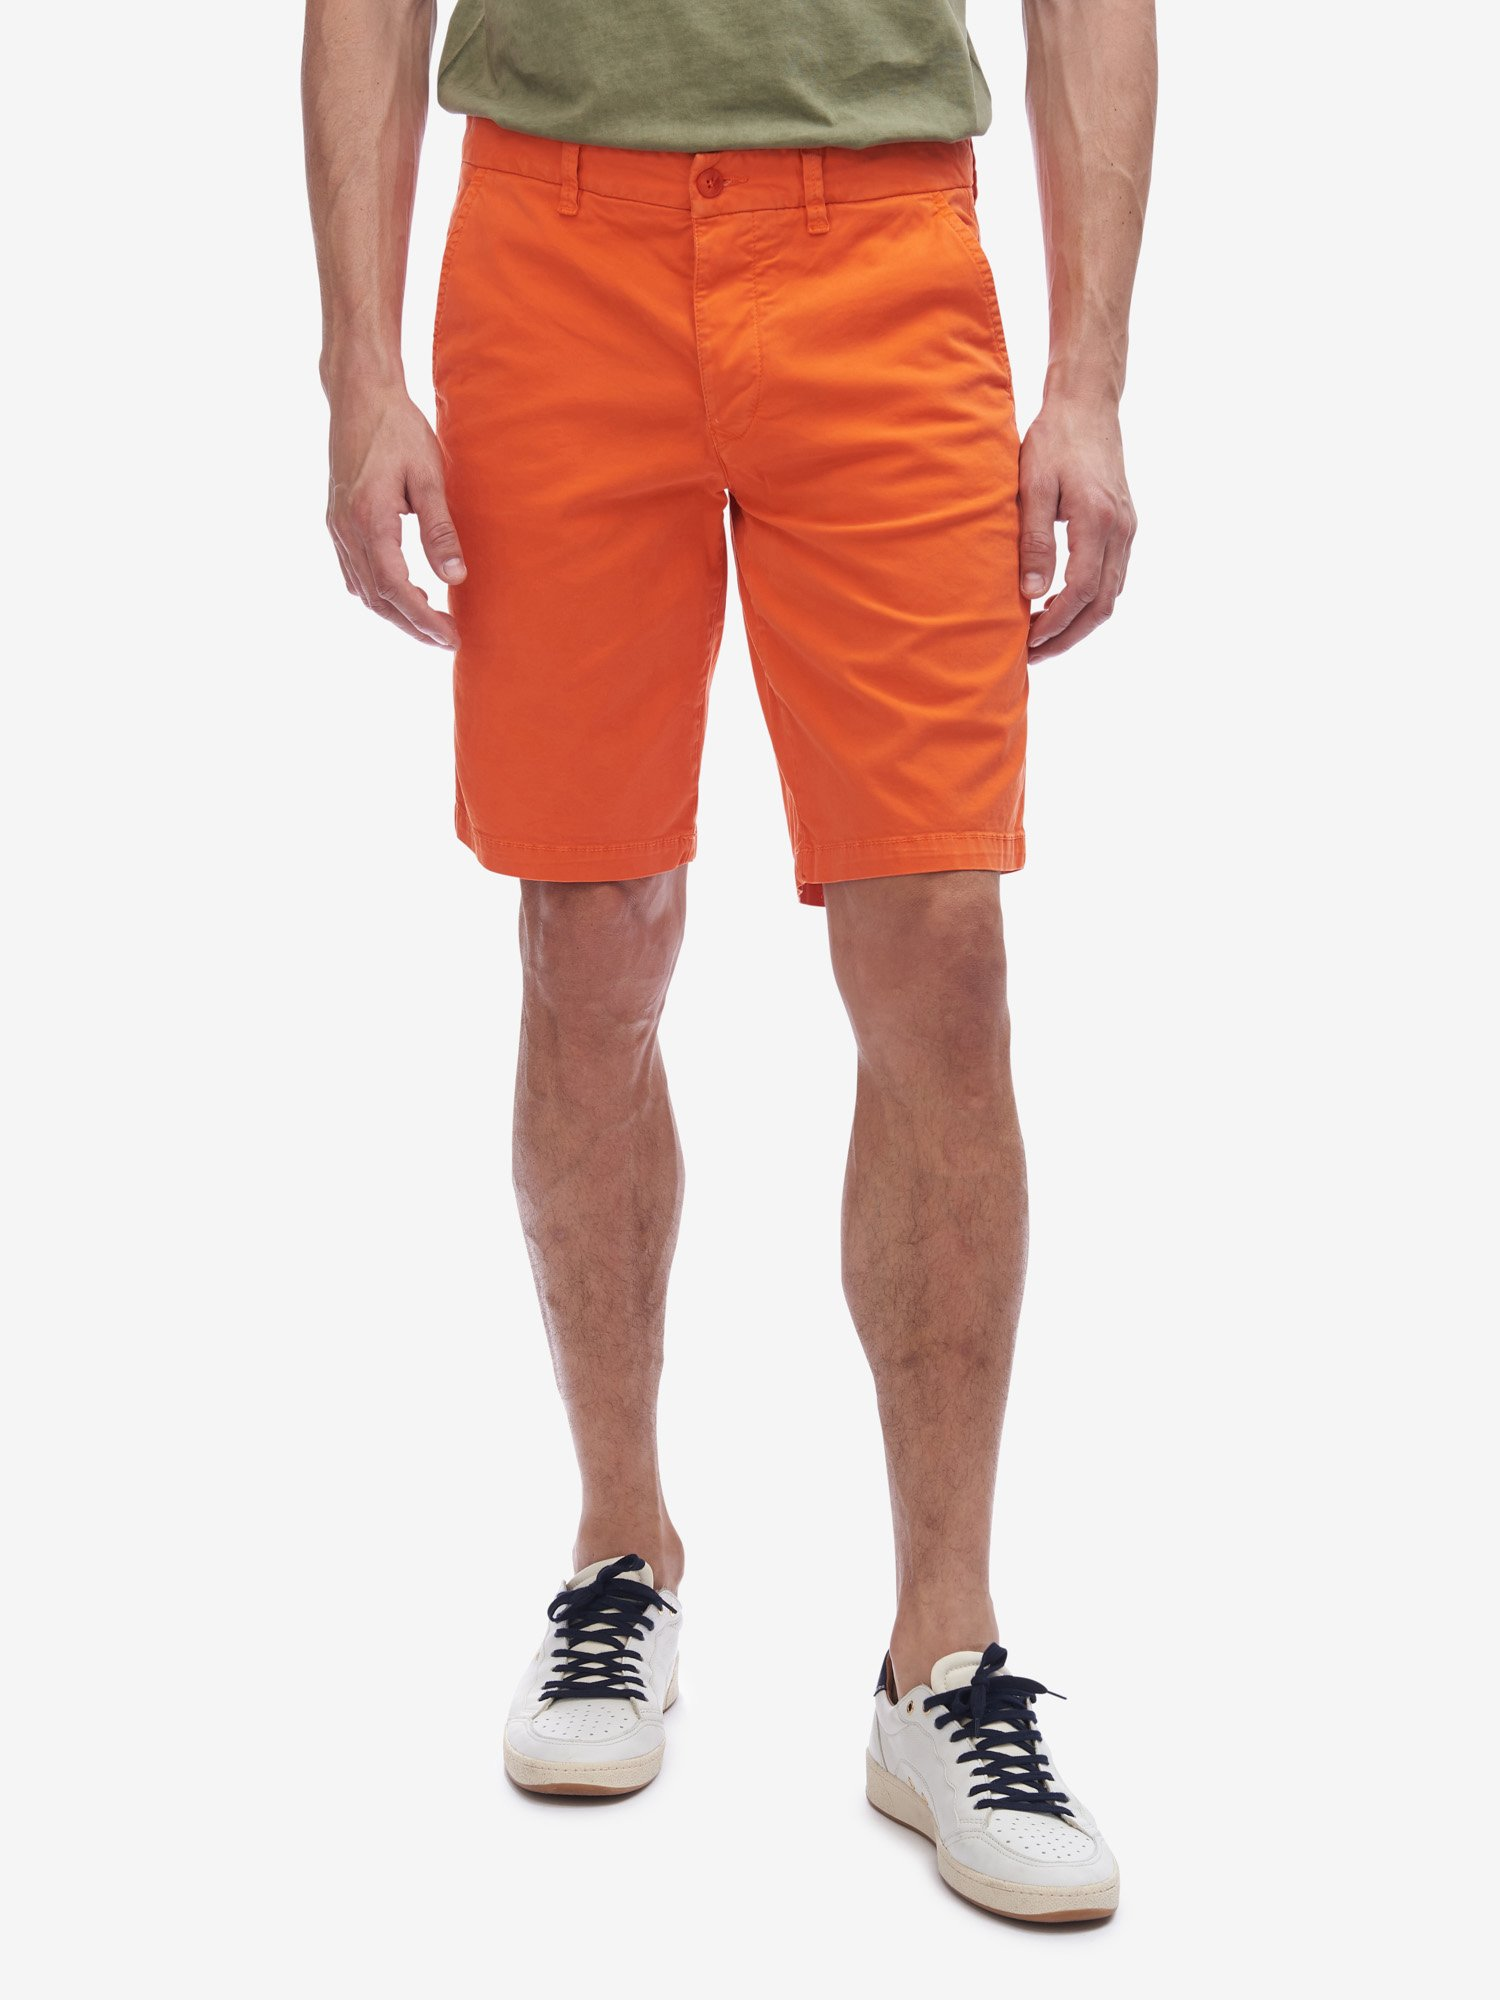 Blauer - FOUR POCKET BERMUDA SHORTS - Bright Orange - Blauer